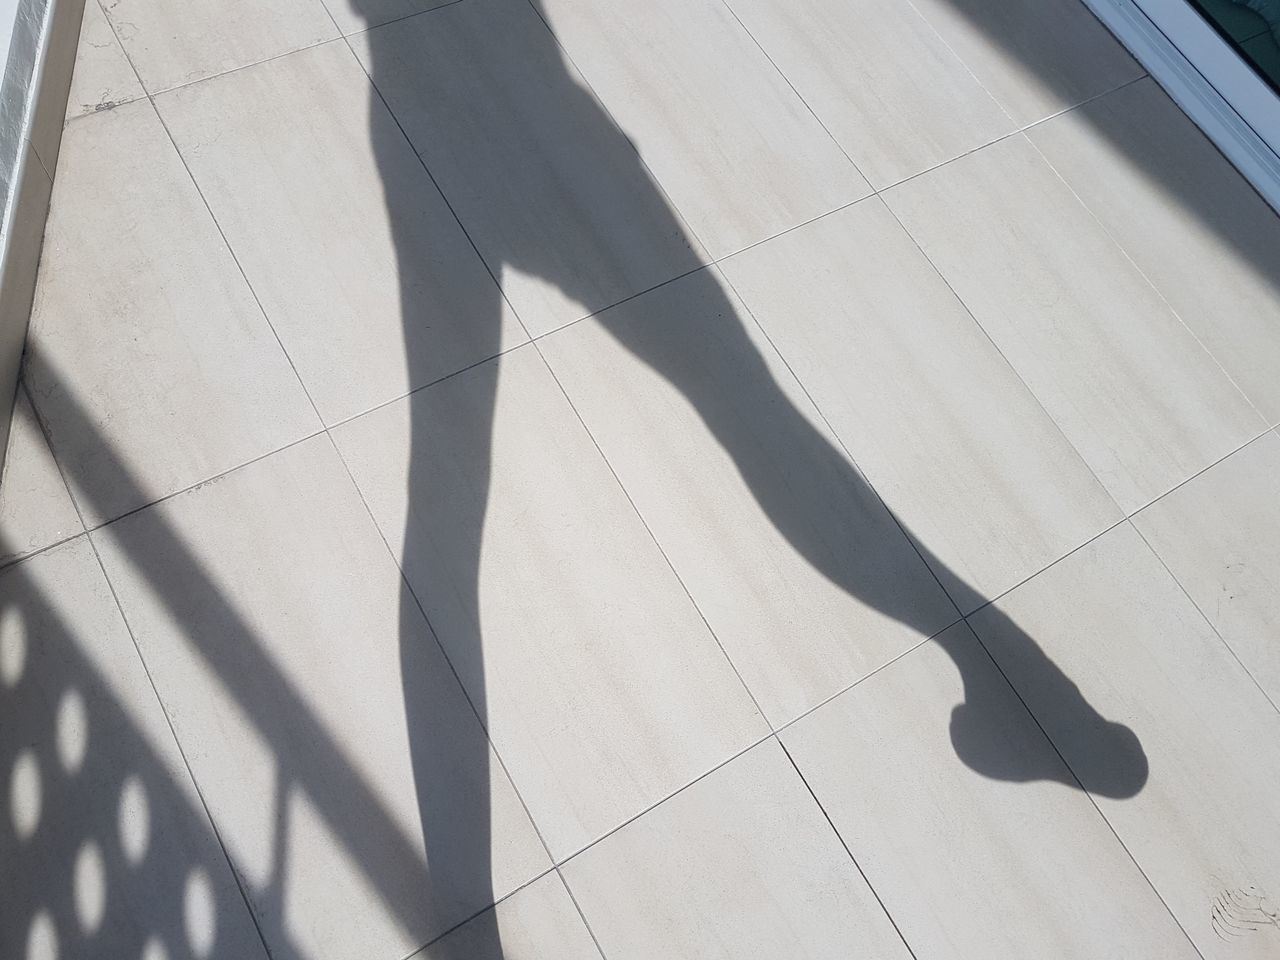 Shadow Of Woman Stretching